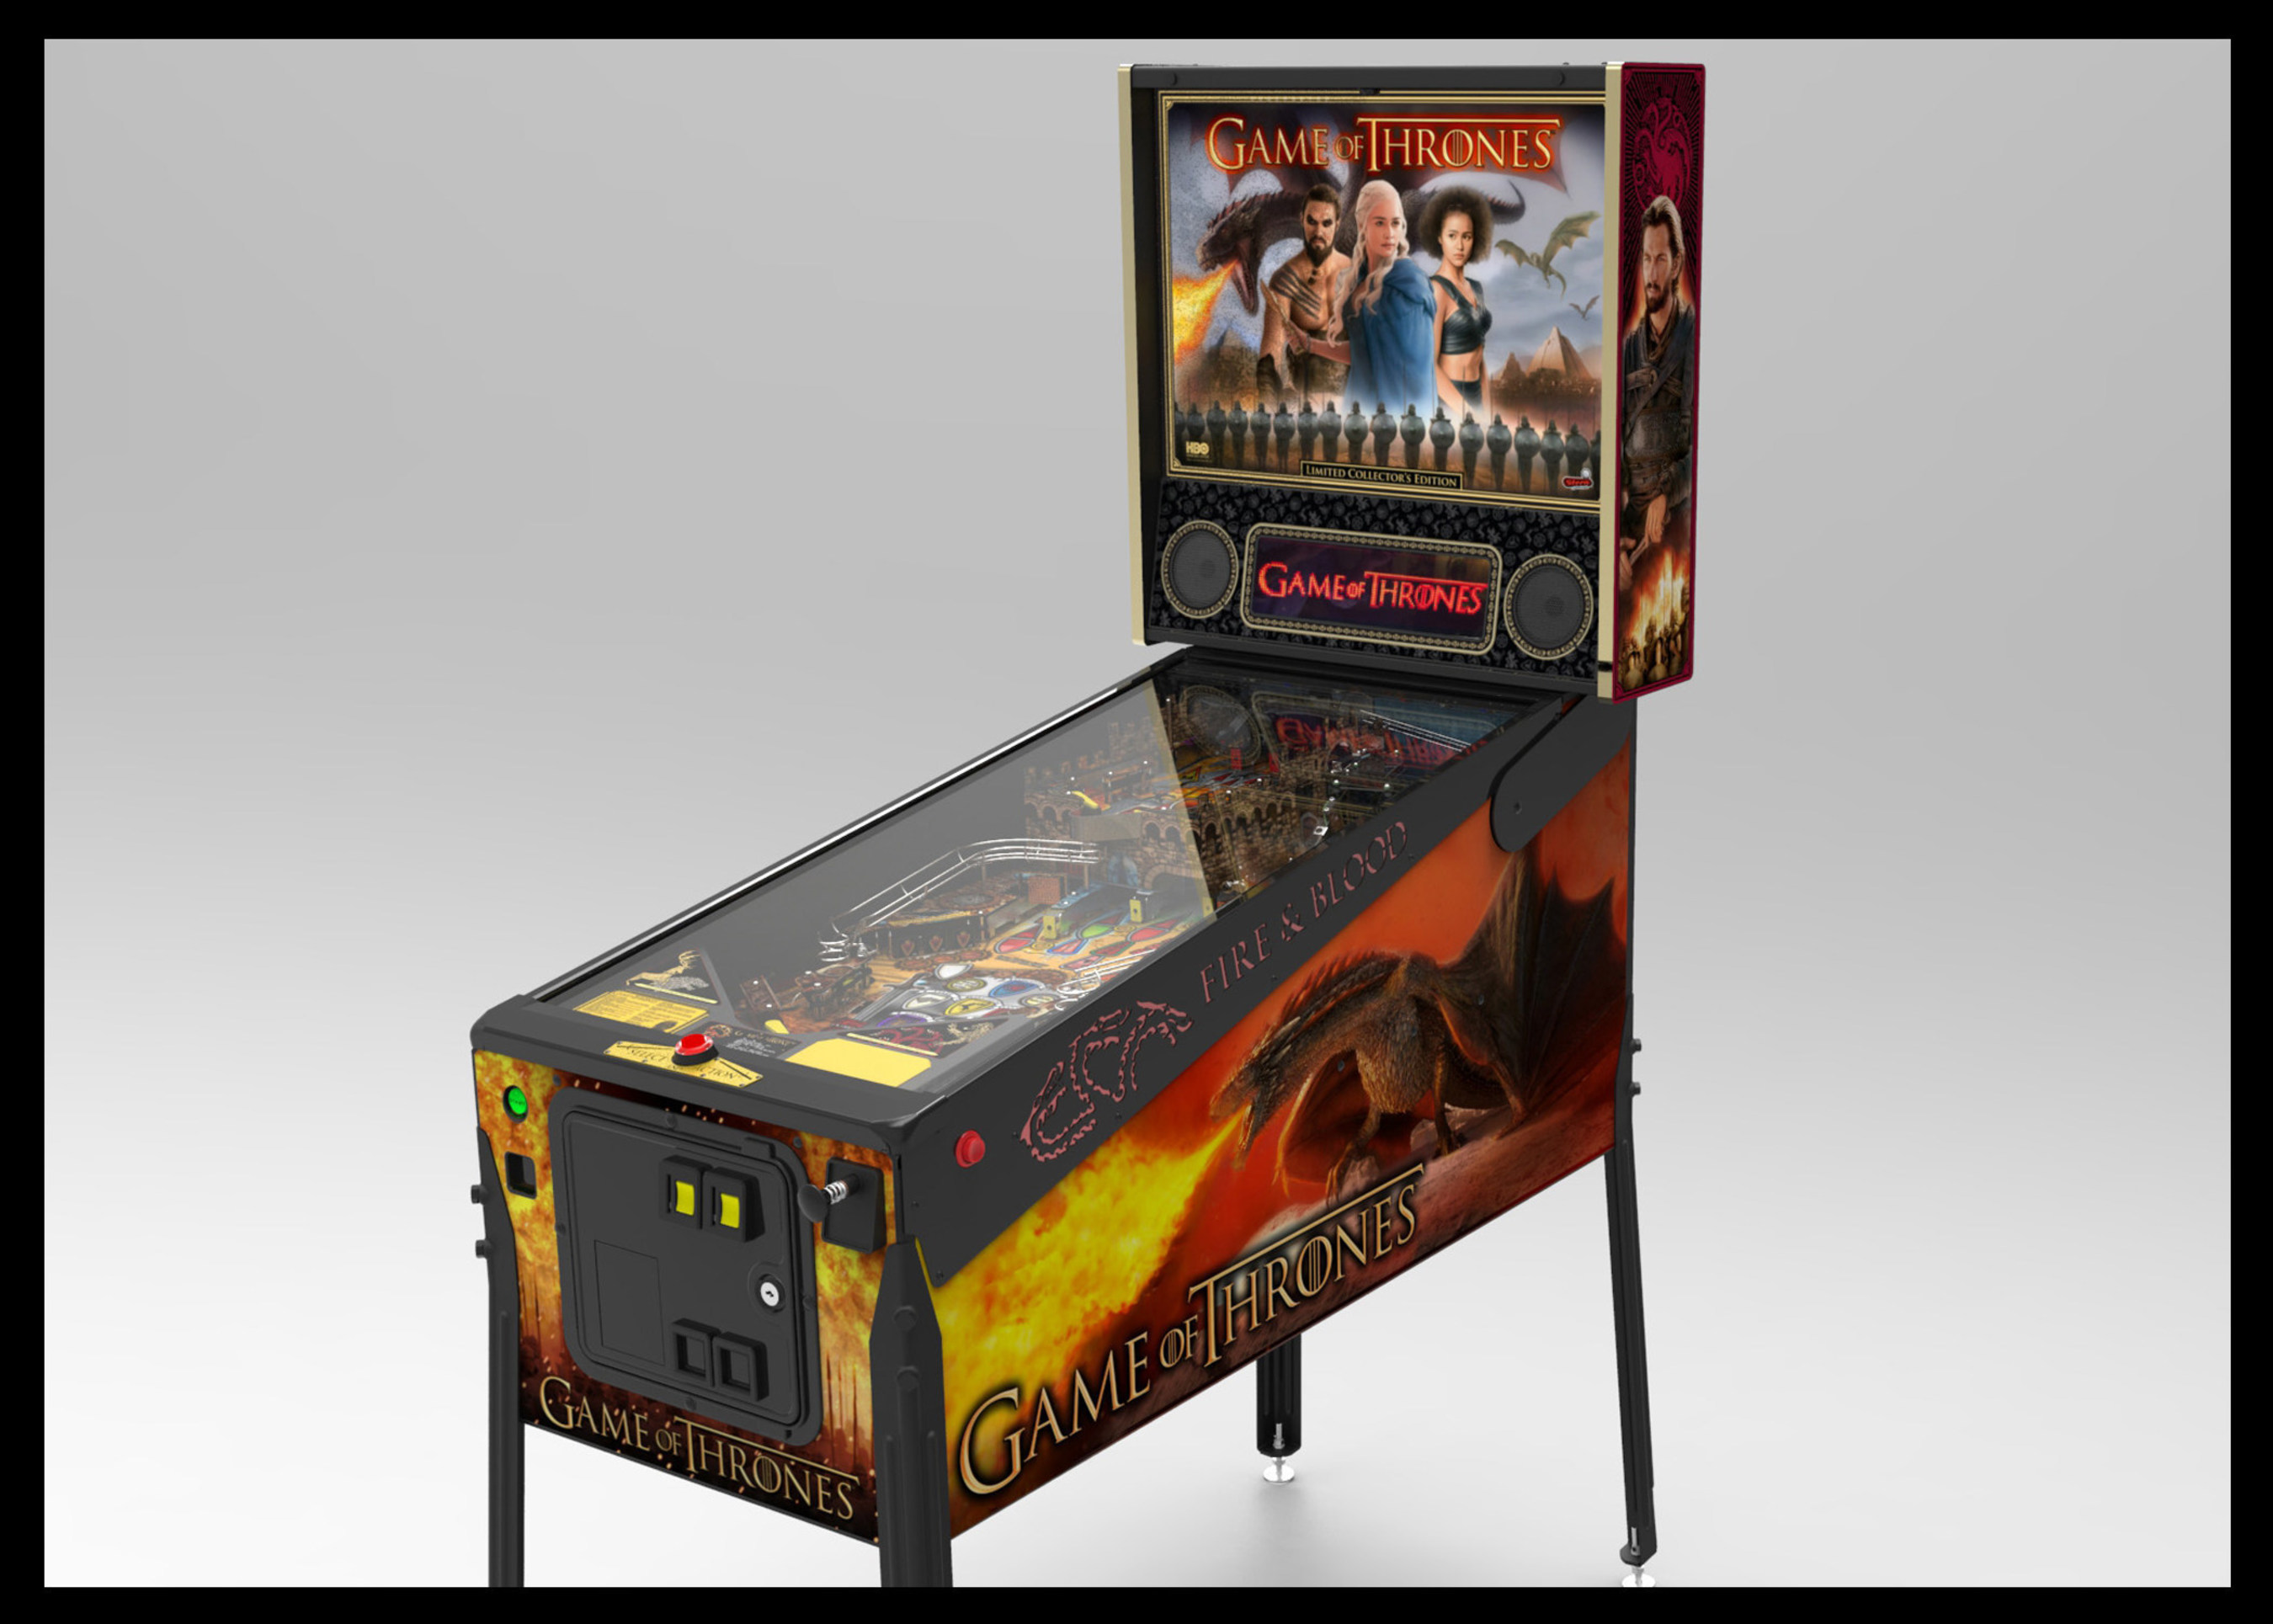 Stern Pinball to Release Game of Thrones' Pinball Machines